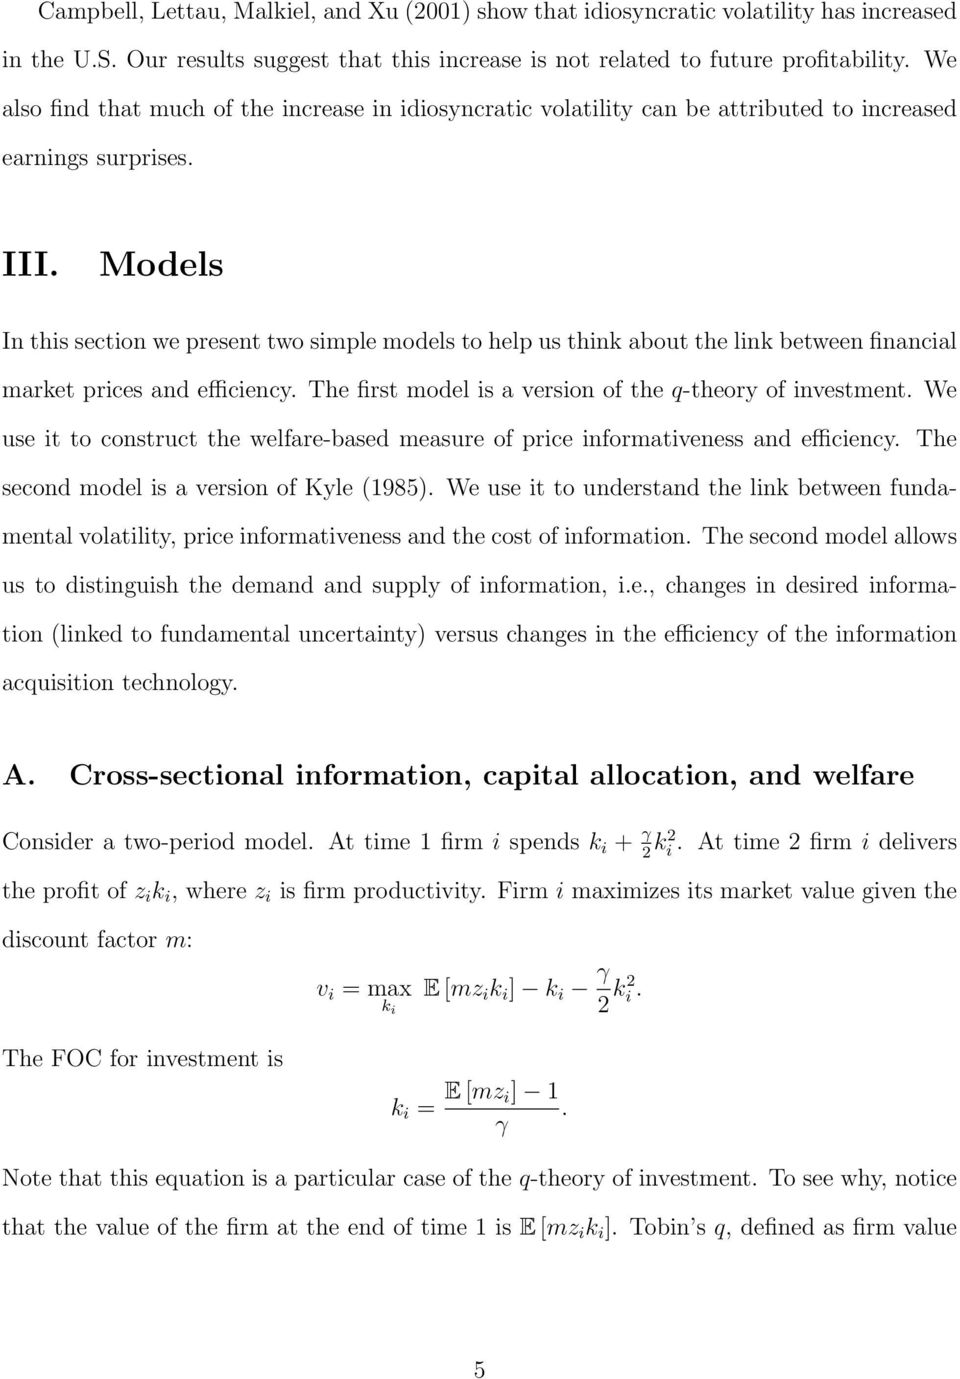 Models In this section we present two simple models to help us think about the link between financial market prices and efficiency. The first model is a version of the q-theory of investment.